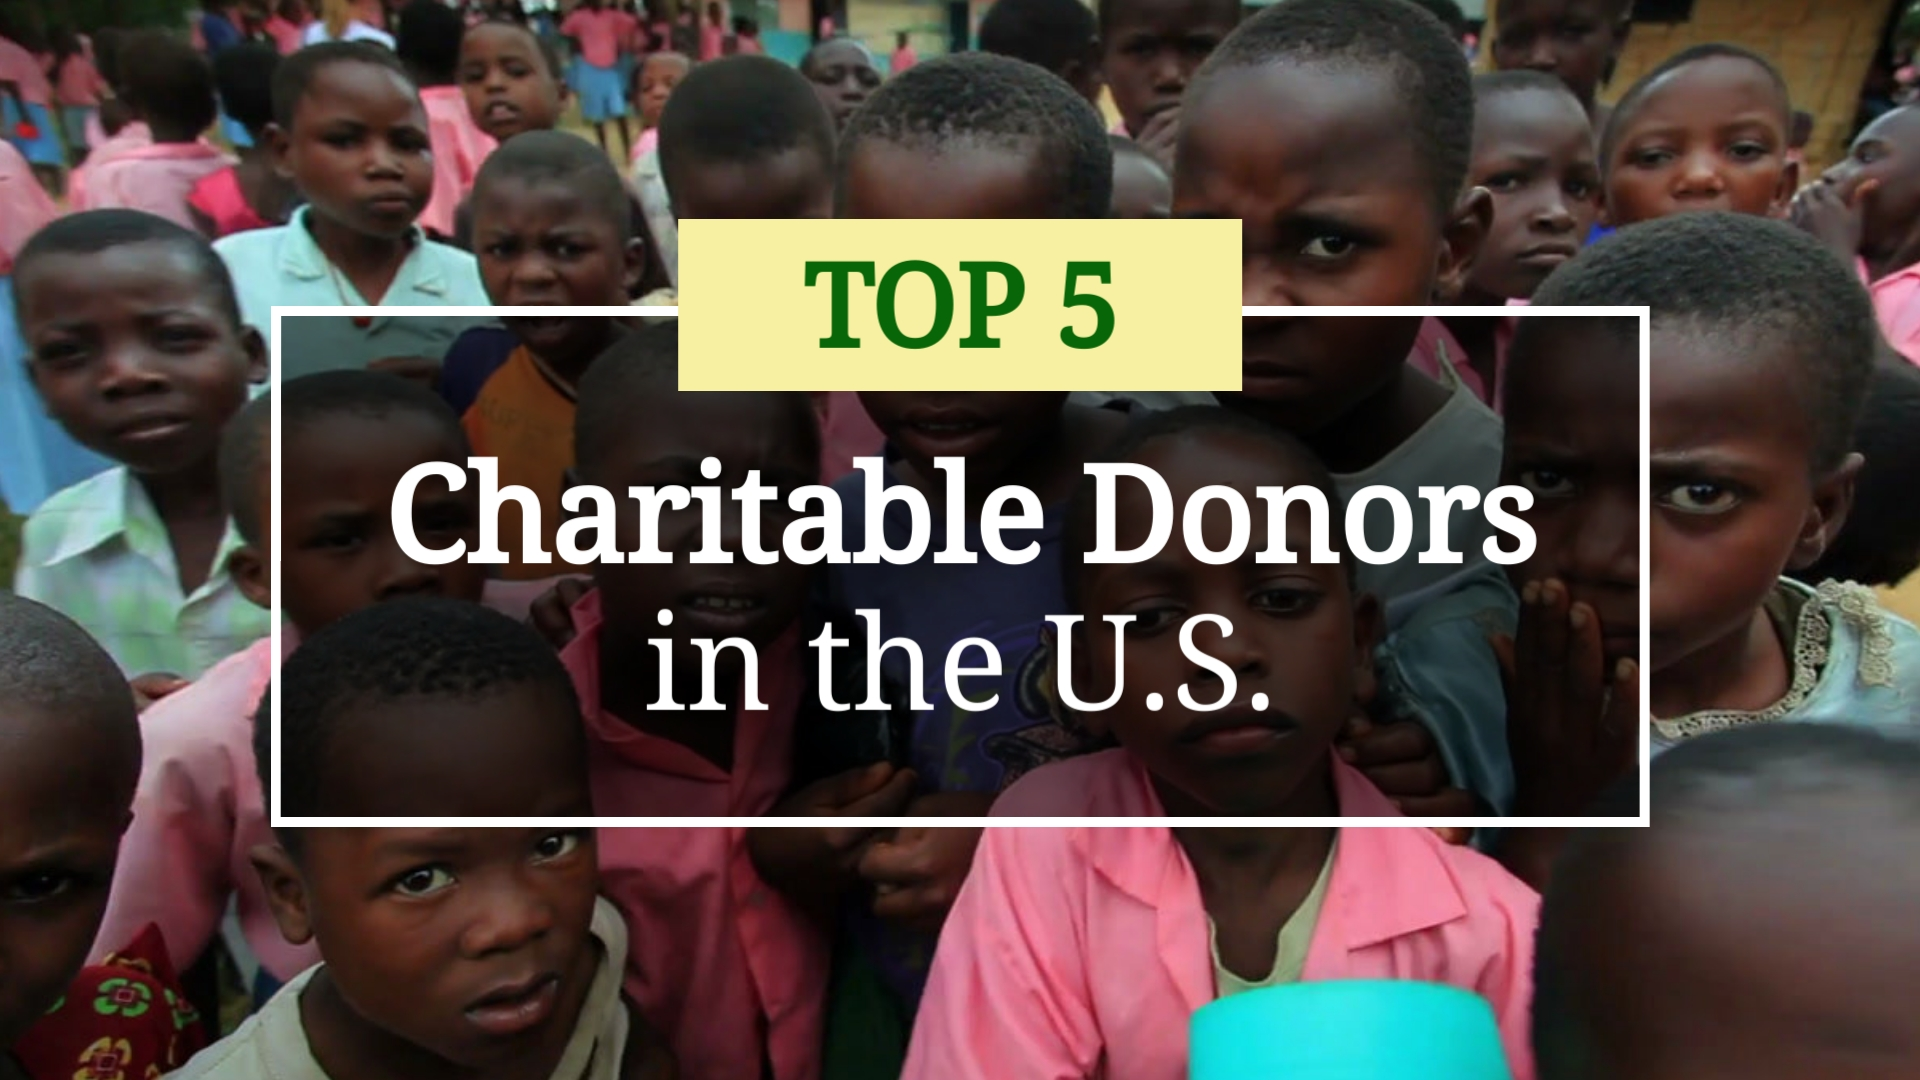 Top 5 Charitable Donors in the U.S. - Listicle Video Template